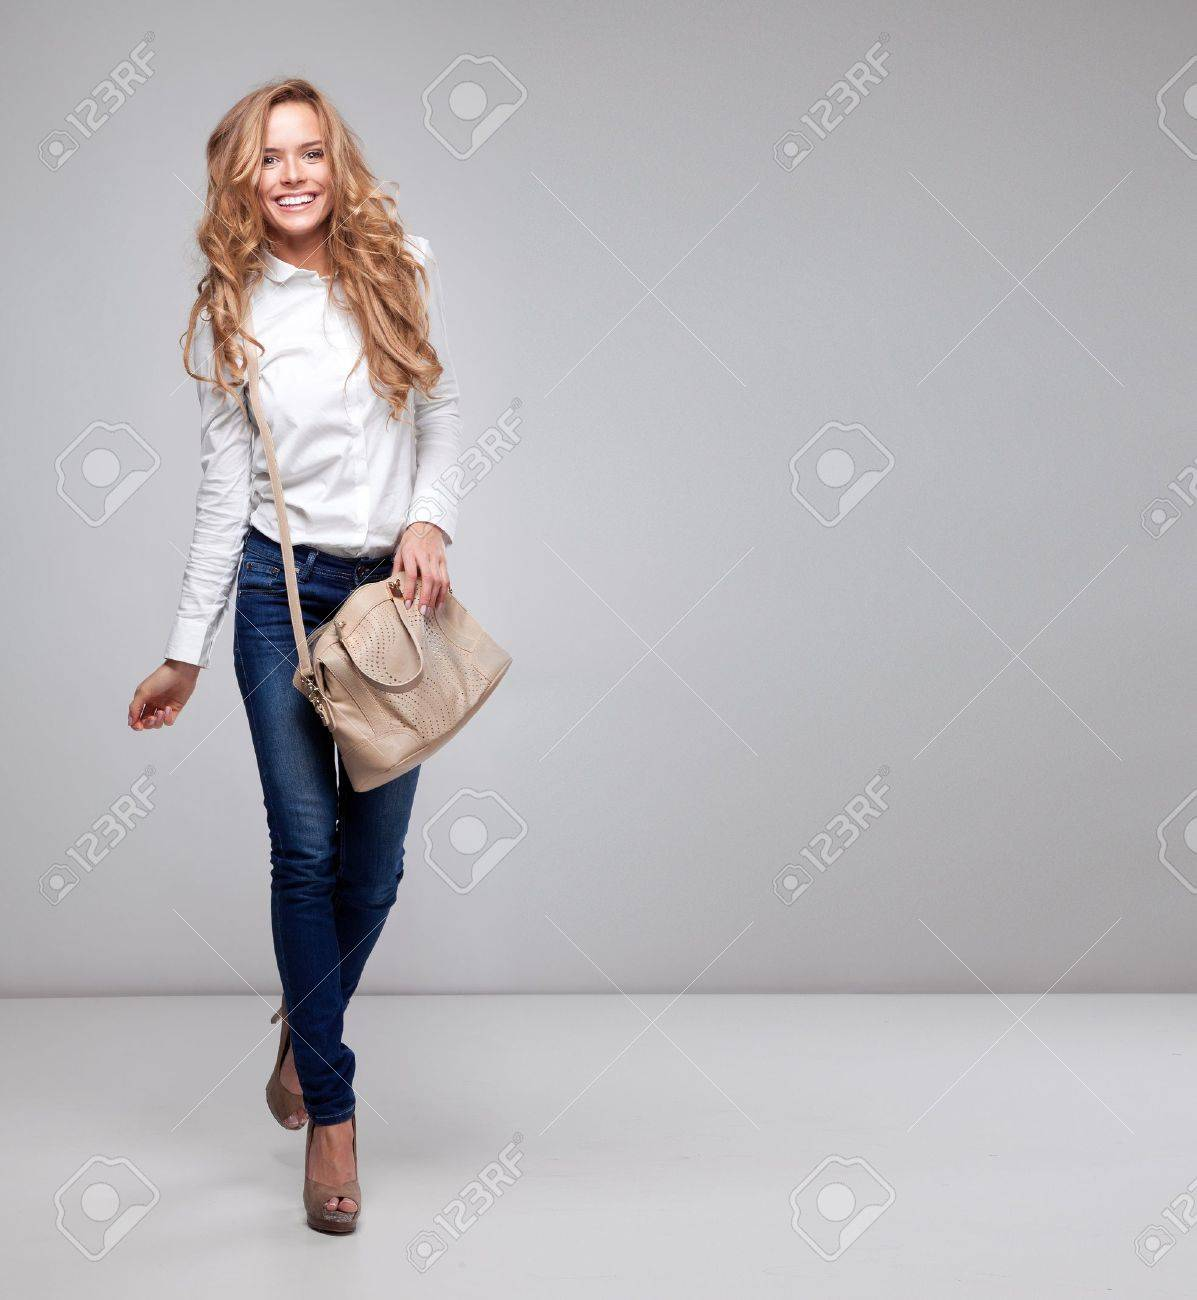 Beautiful Woman Holding A Handbag Stock Photo, Picture And Royalty ...